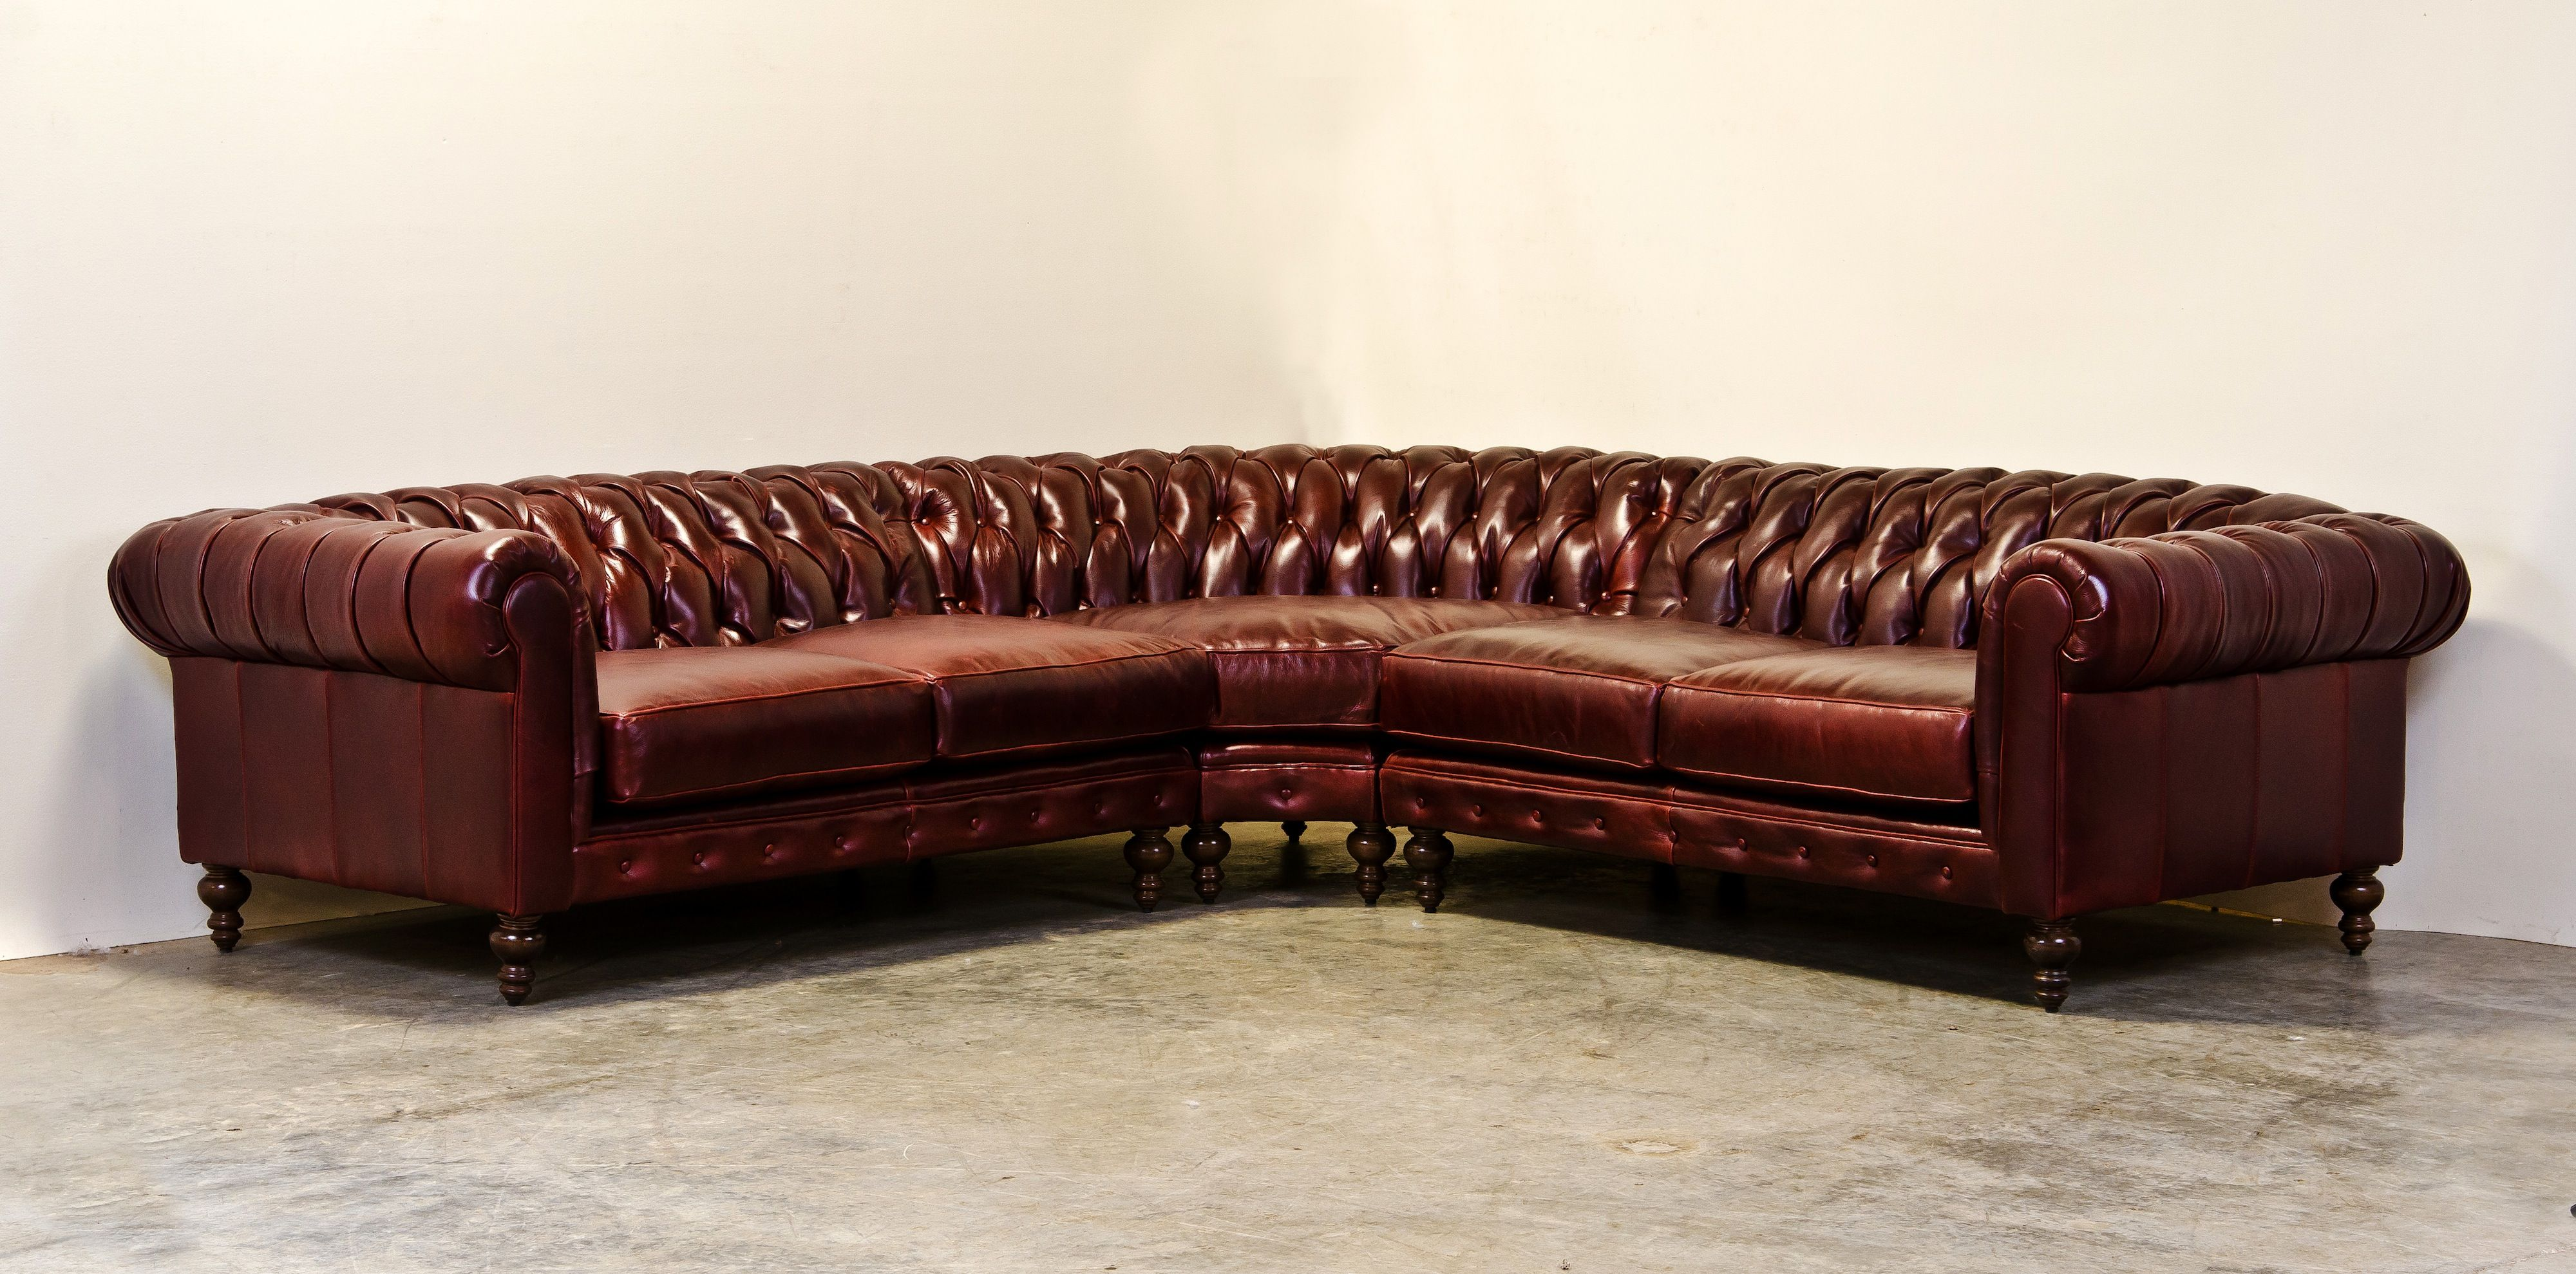 Chesterfield Sectional In Burgundy Leather Comfortable Couch